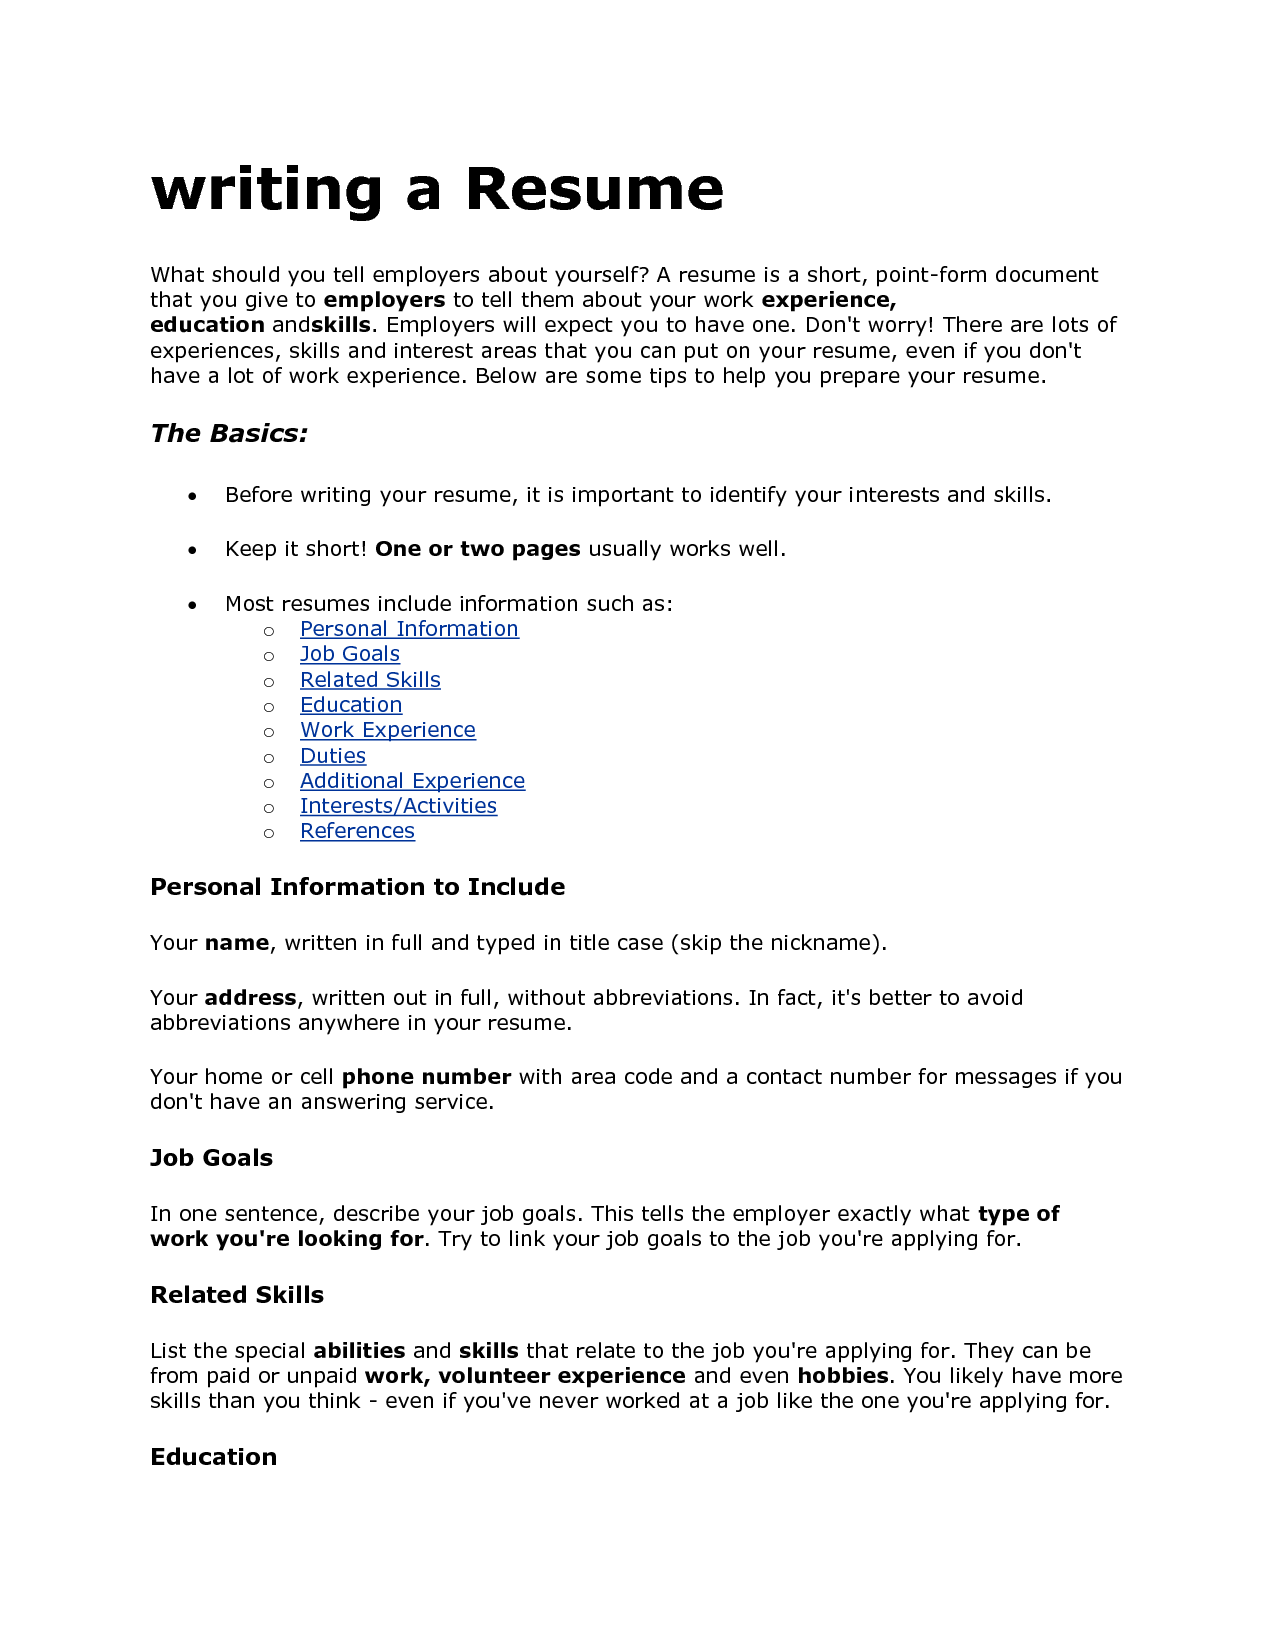 Good Interests Put Resume List Cover Letter For Resume Resume Skills Sample Resume